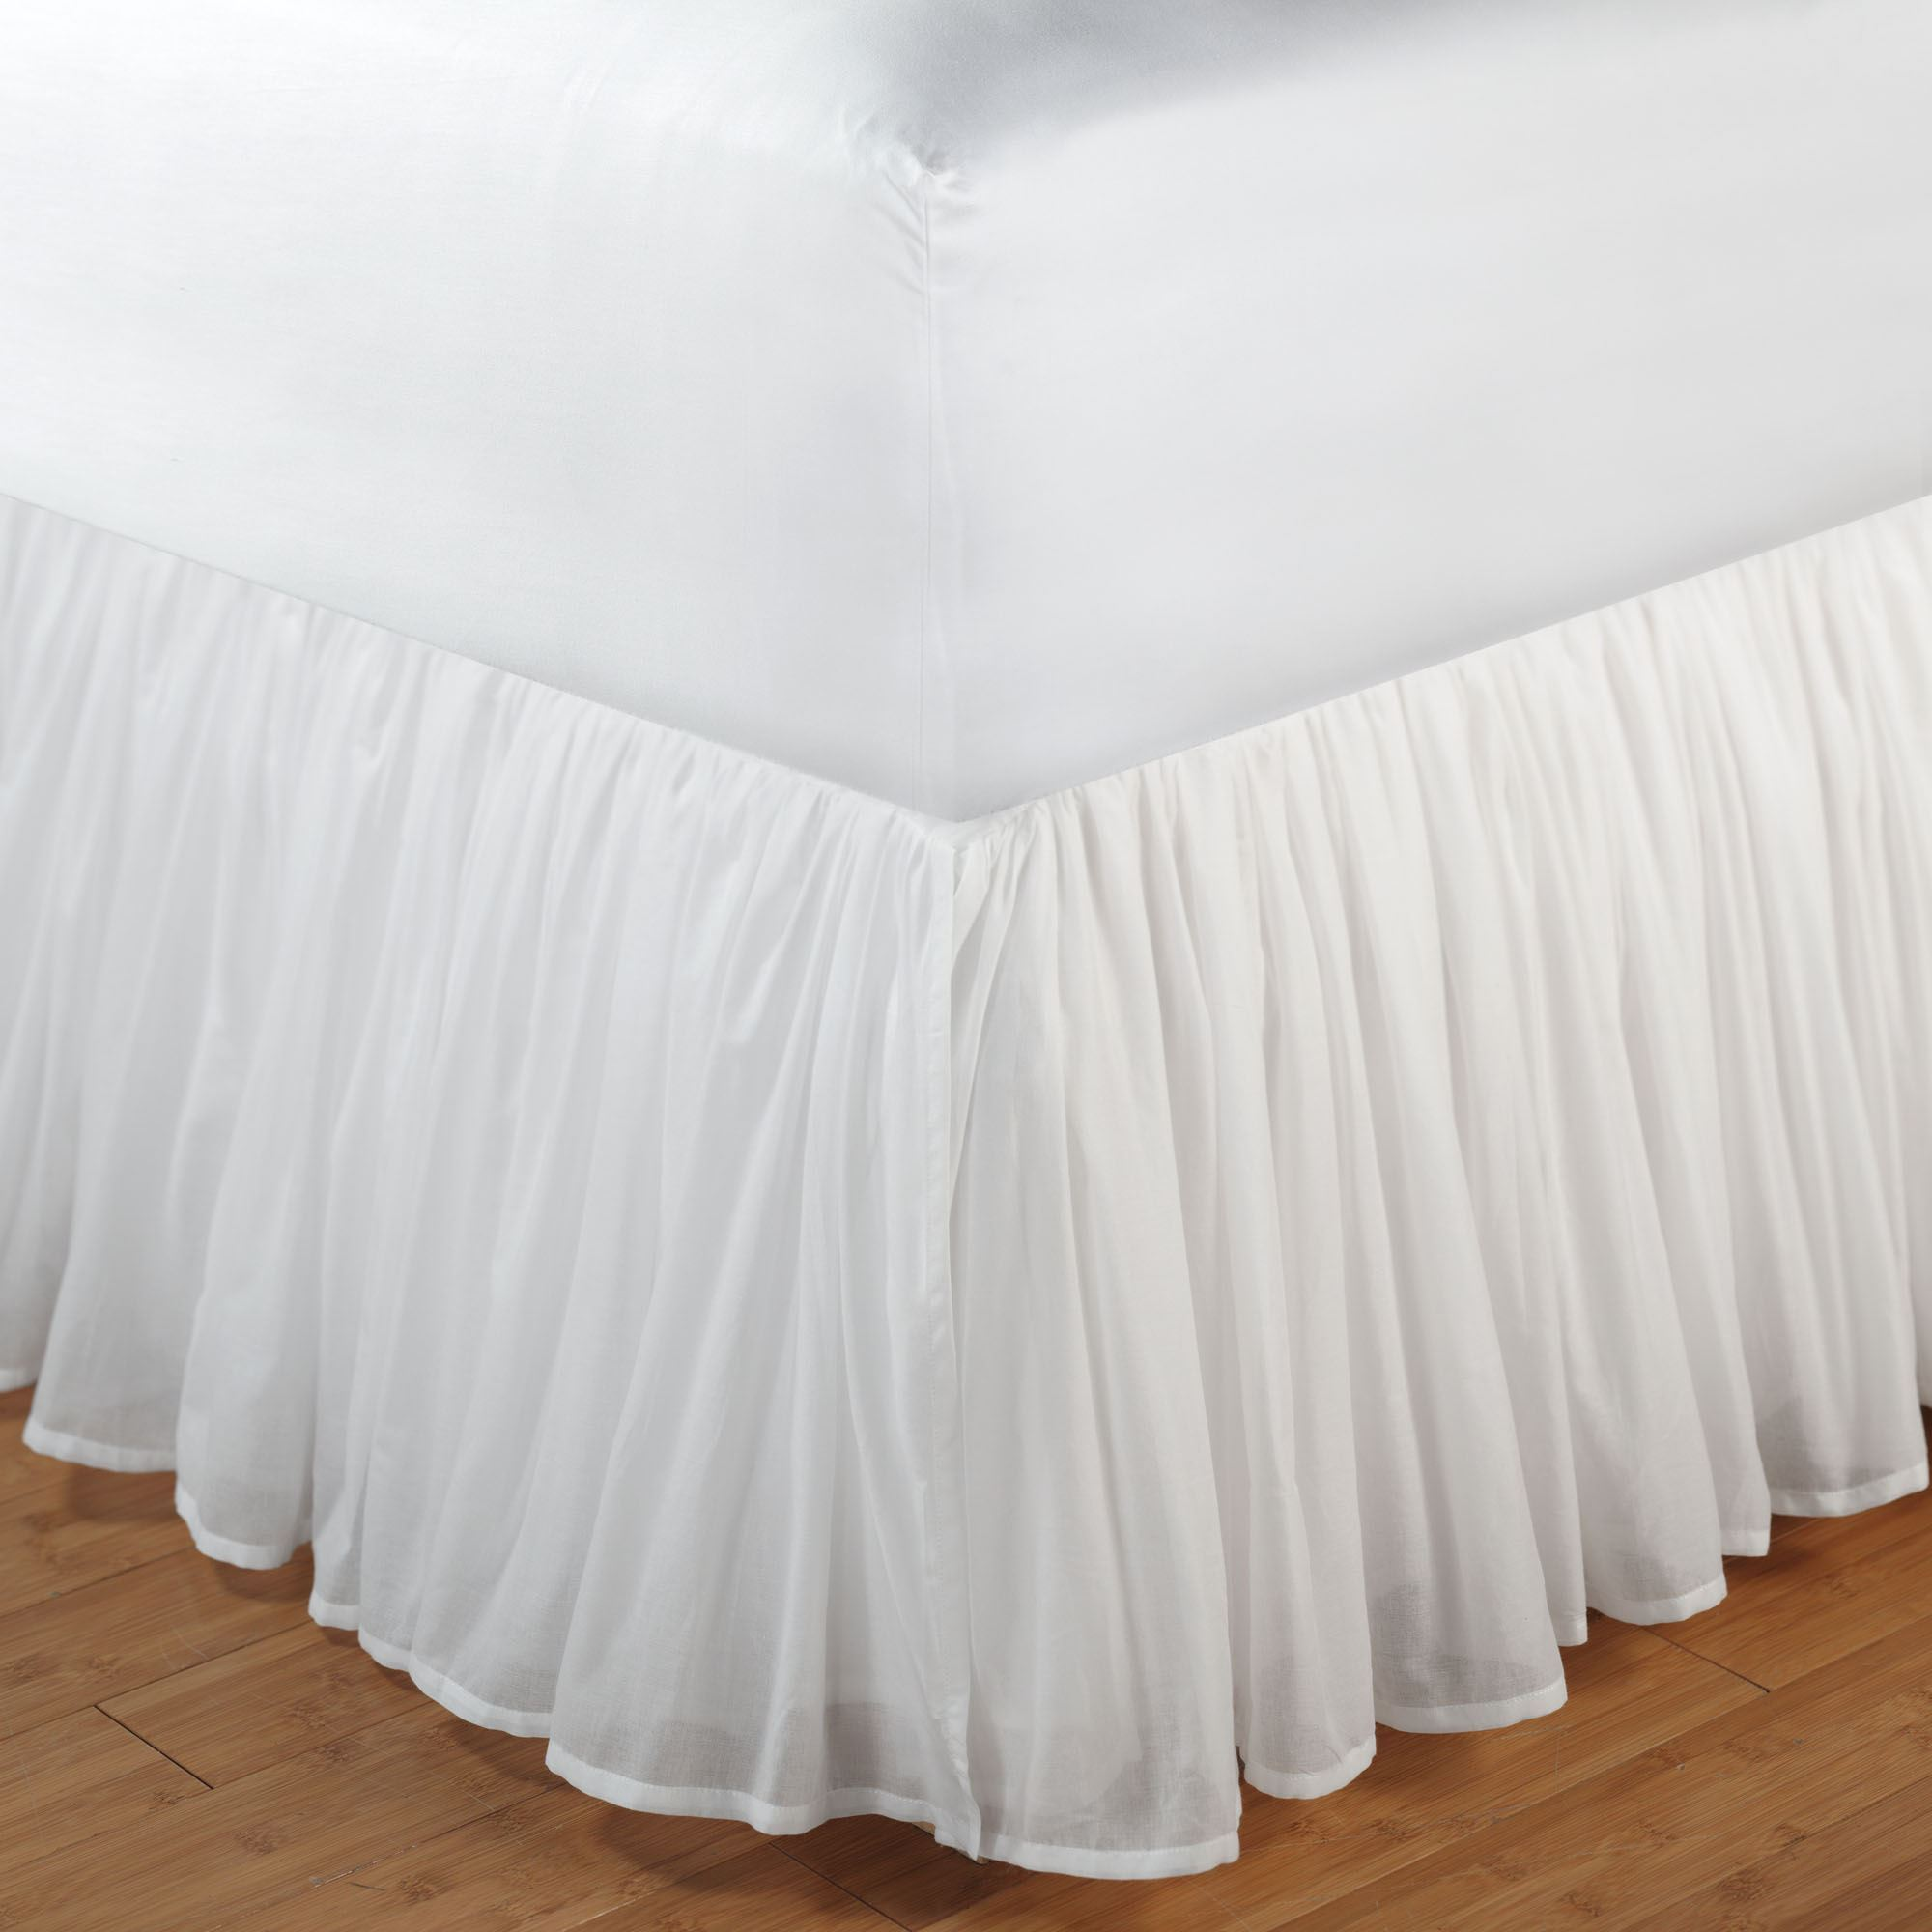 Cotton Voile Gathered Bedskirt Touch To Zoom